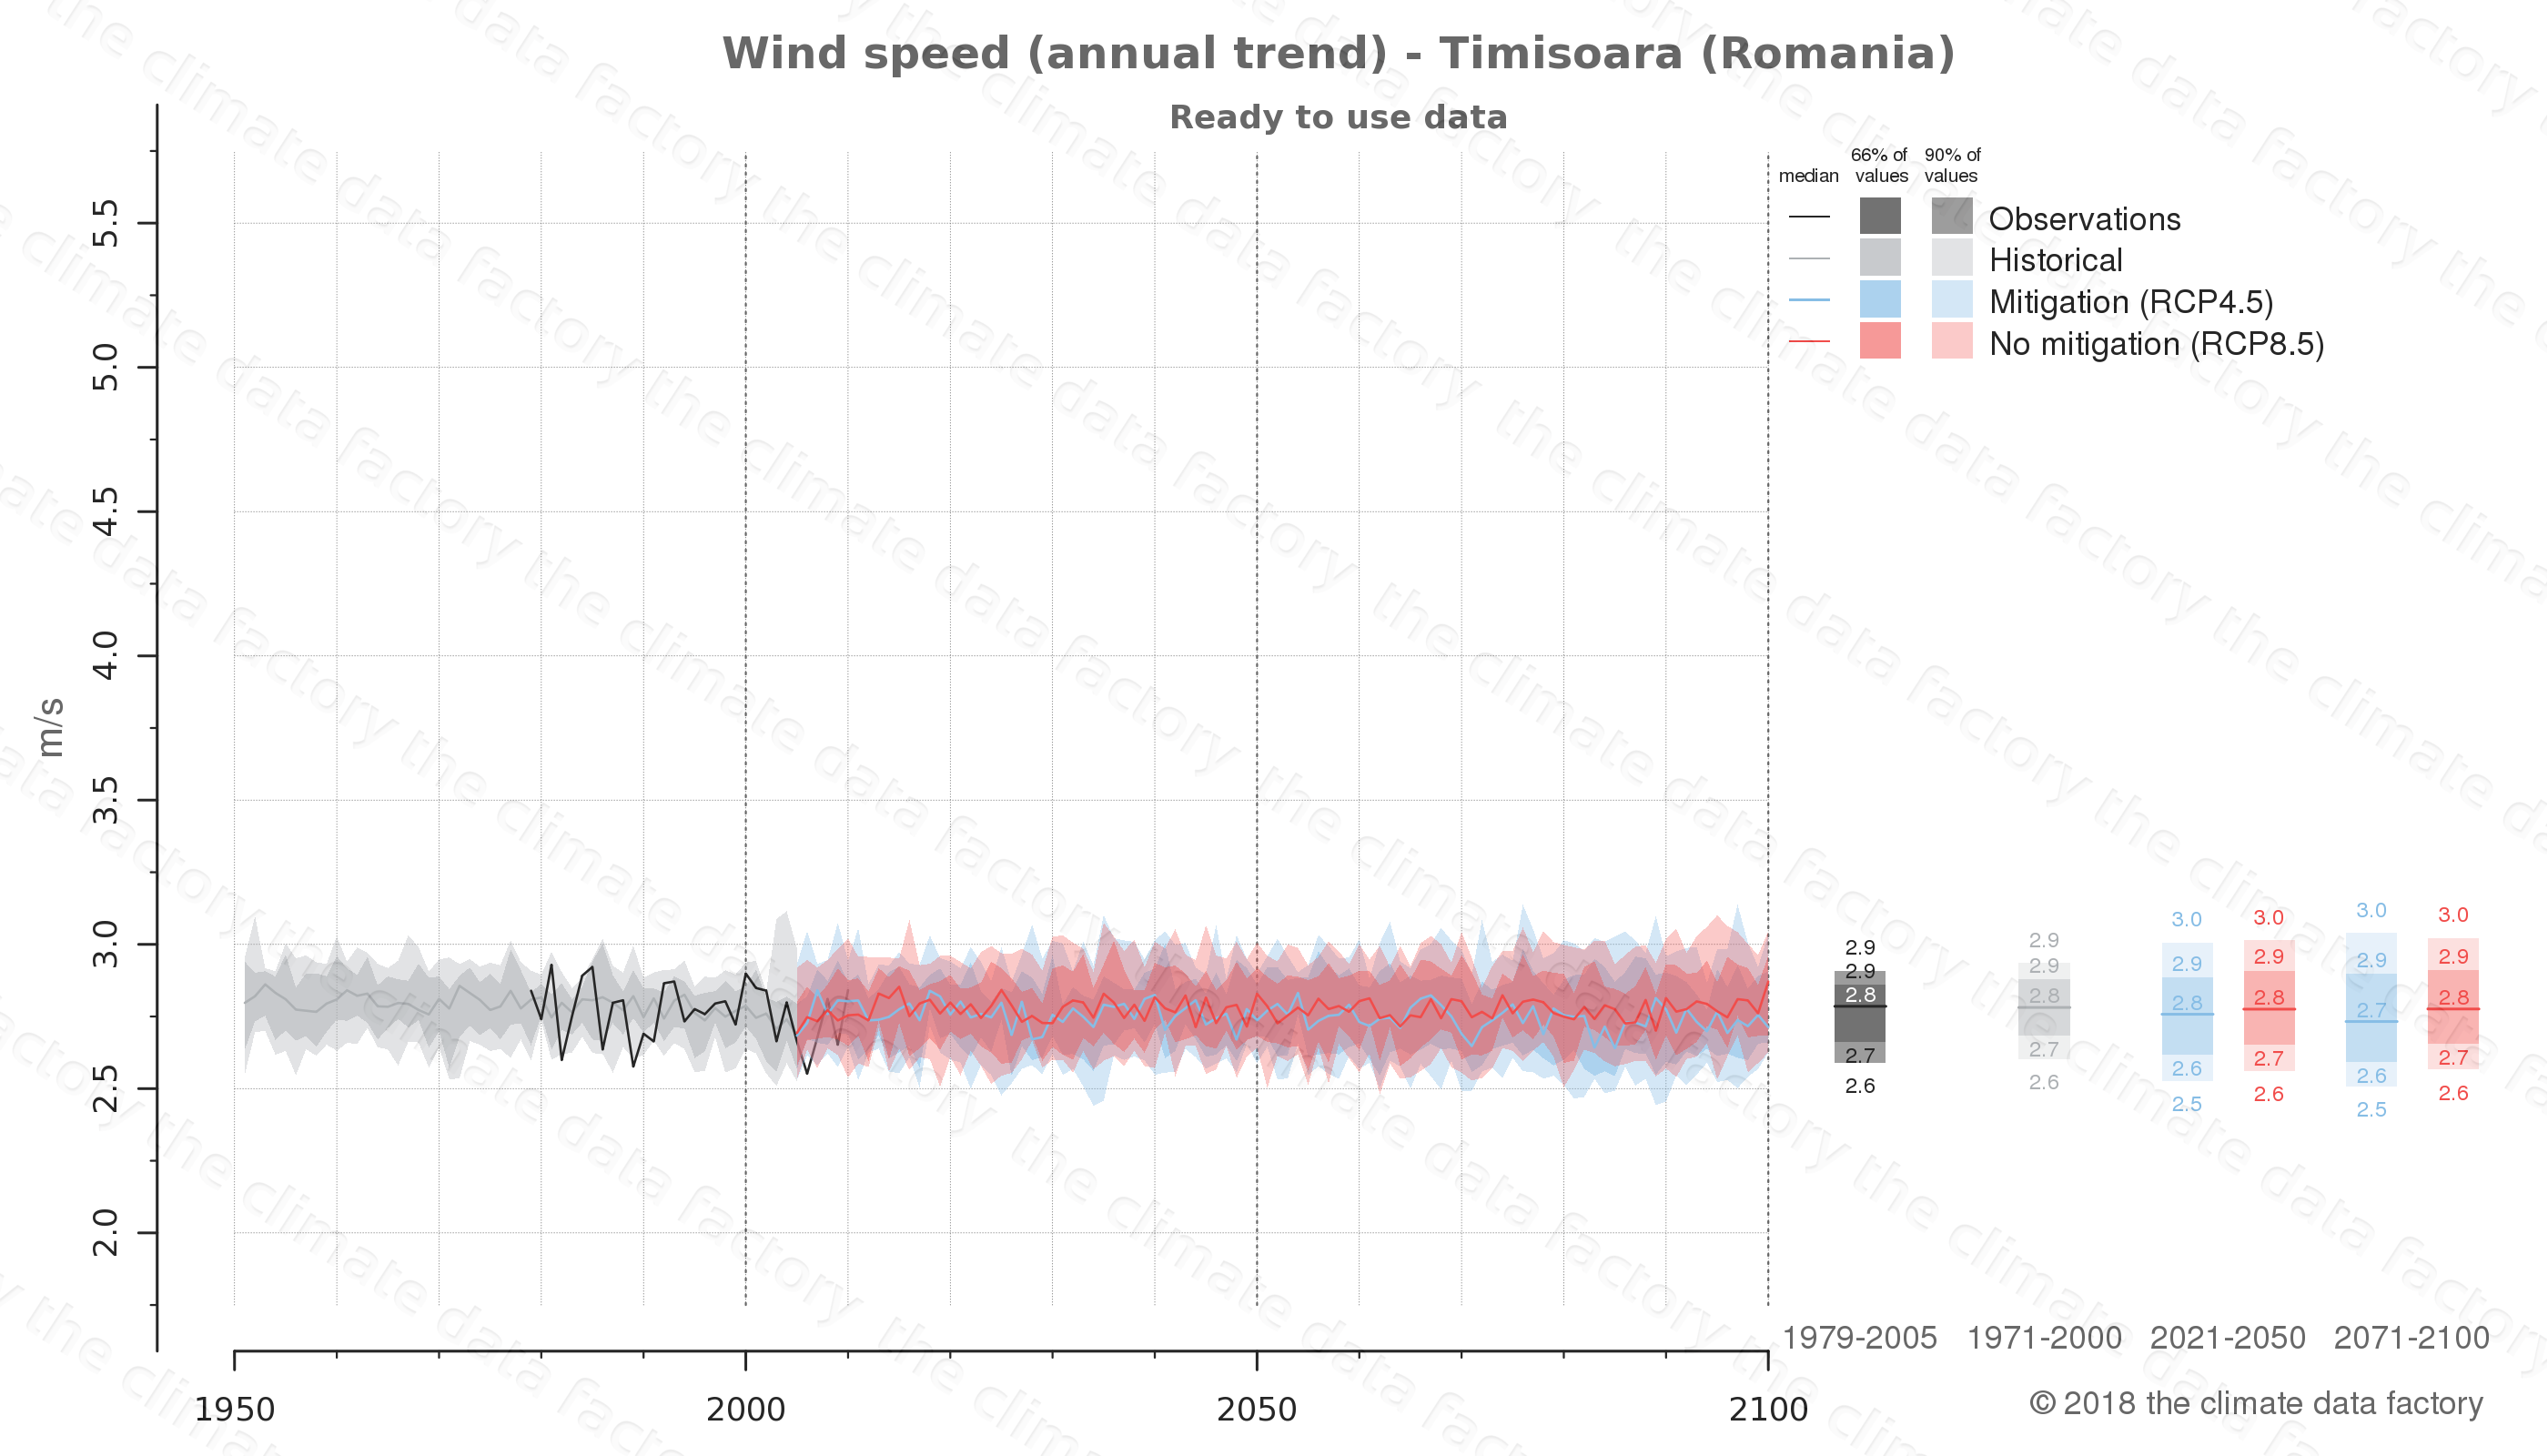 climate change data policy adaptation climate graph city data wind-speed timisoara romania